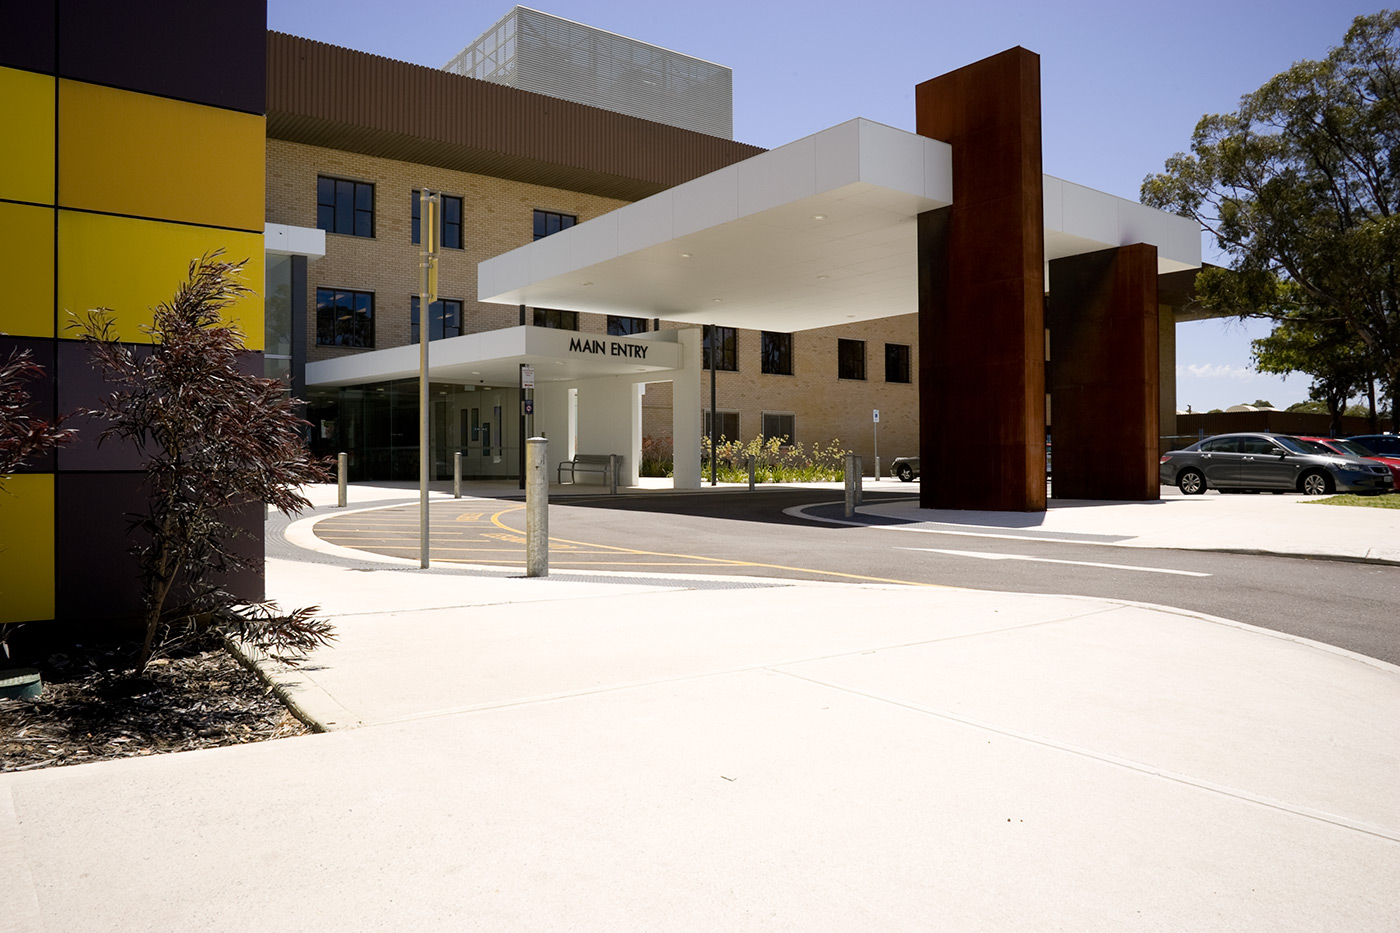 Rockingham Kwinana District Hospital